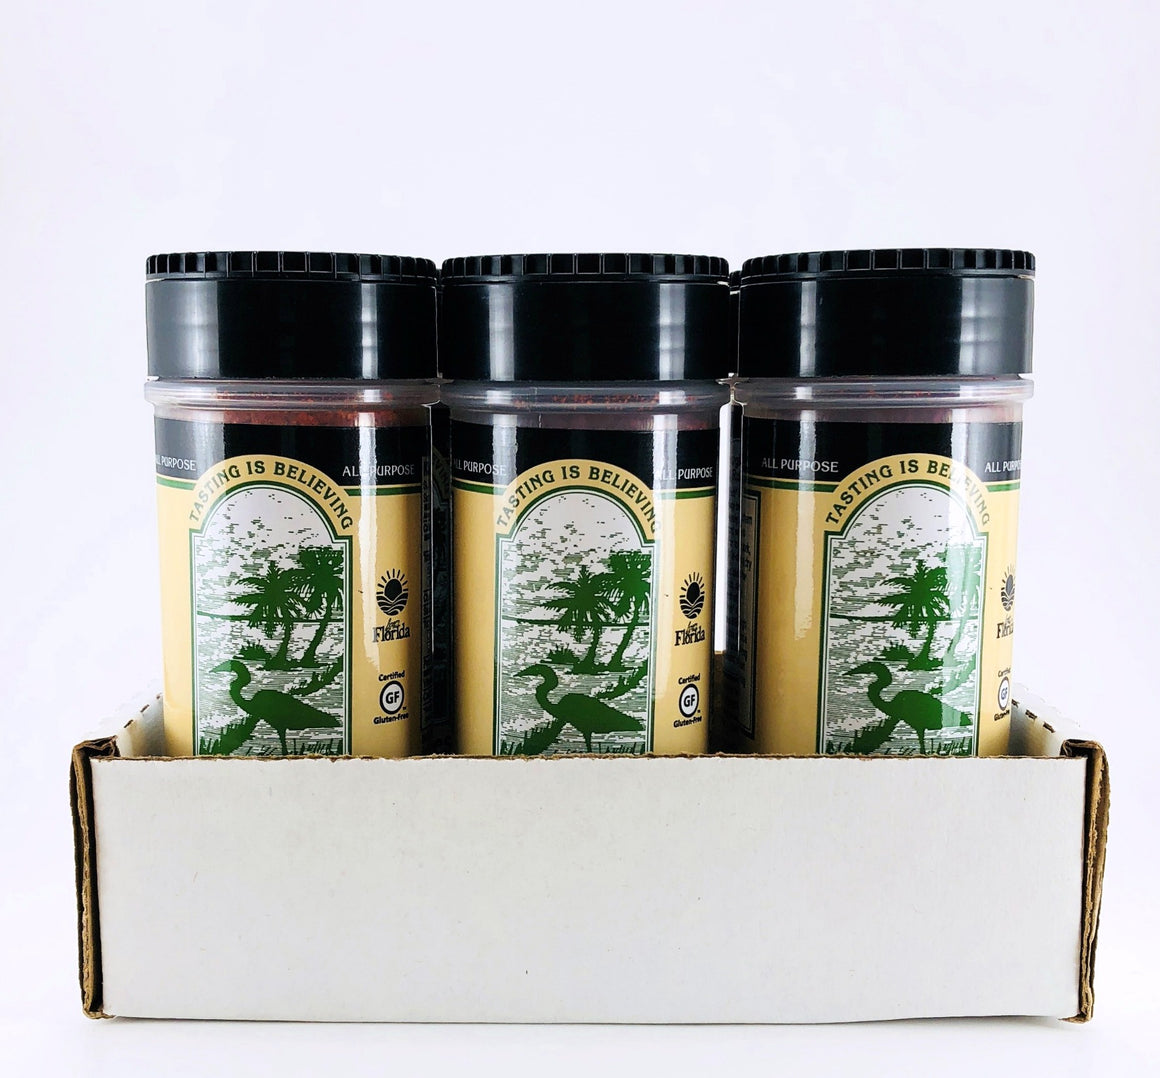 Everglades 6 oz Rub Seasoning Case